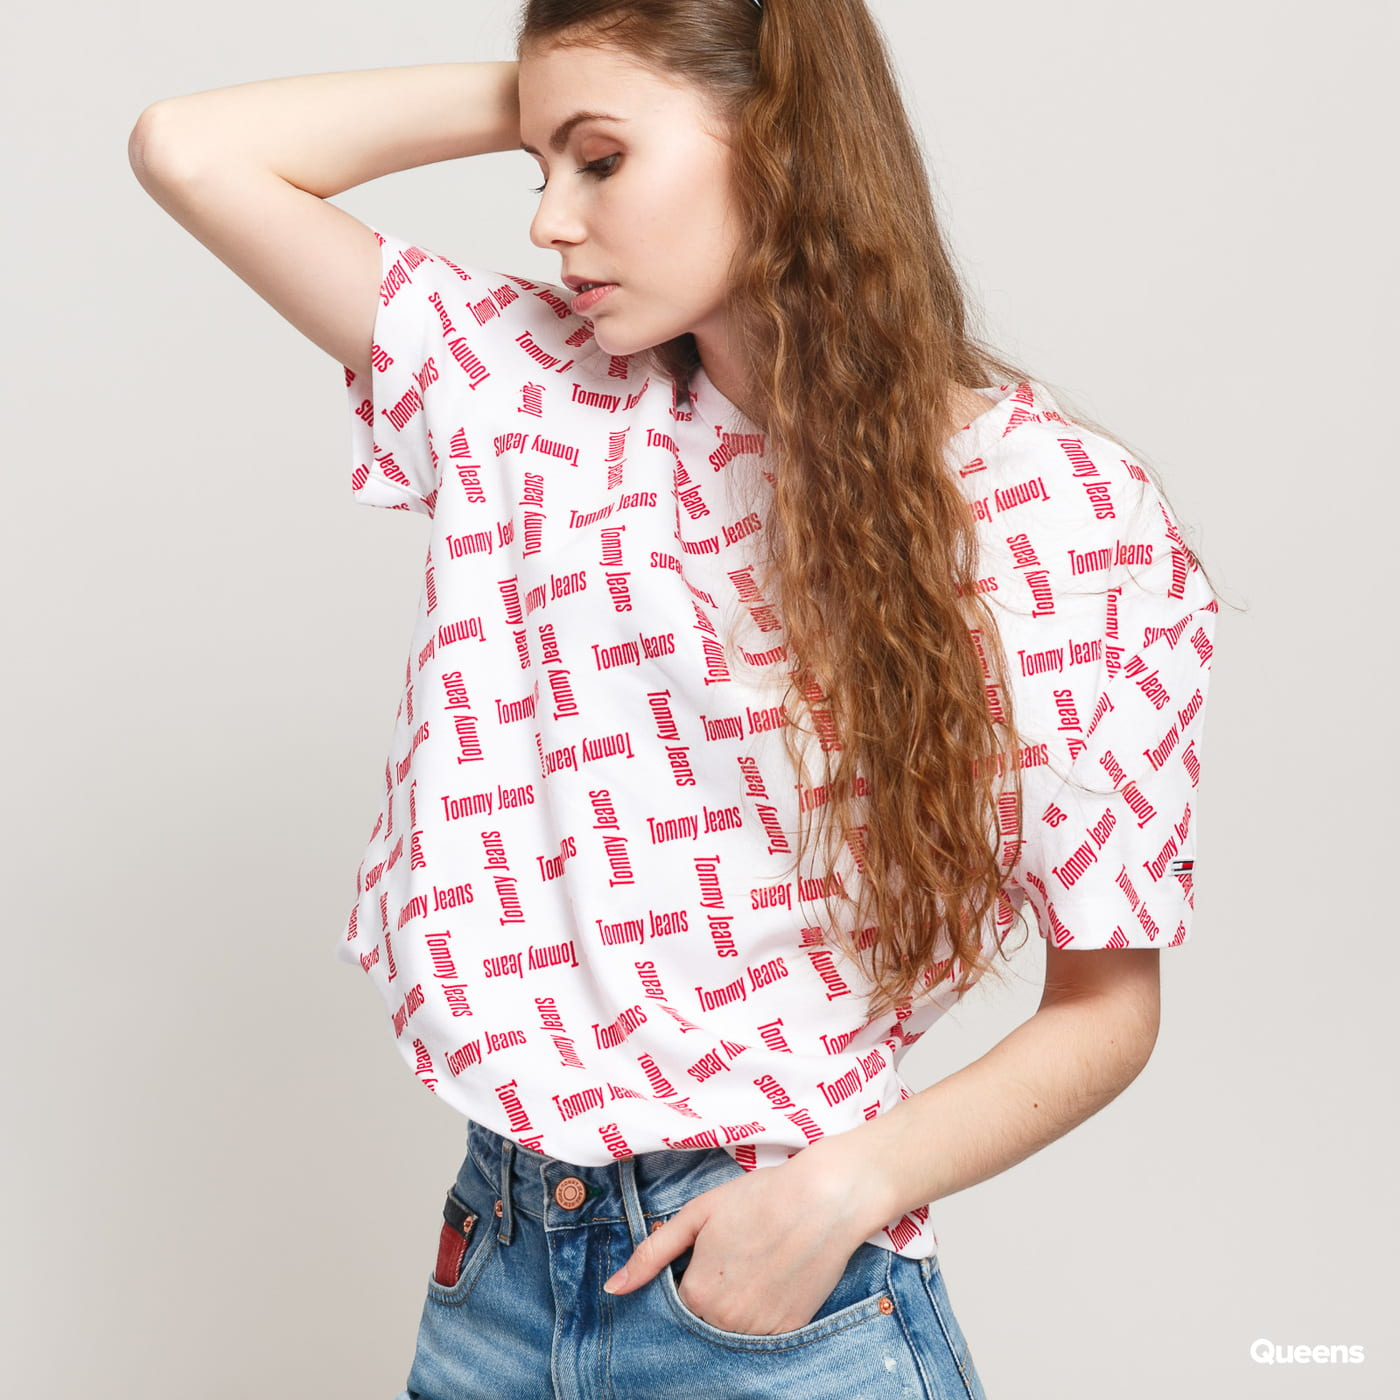 TOMMY JEANS W AOP Tee white / red